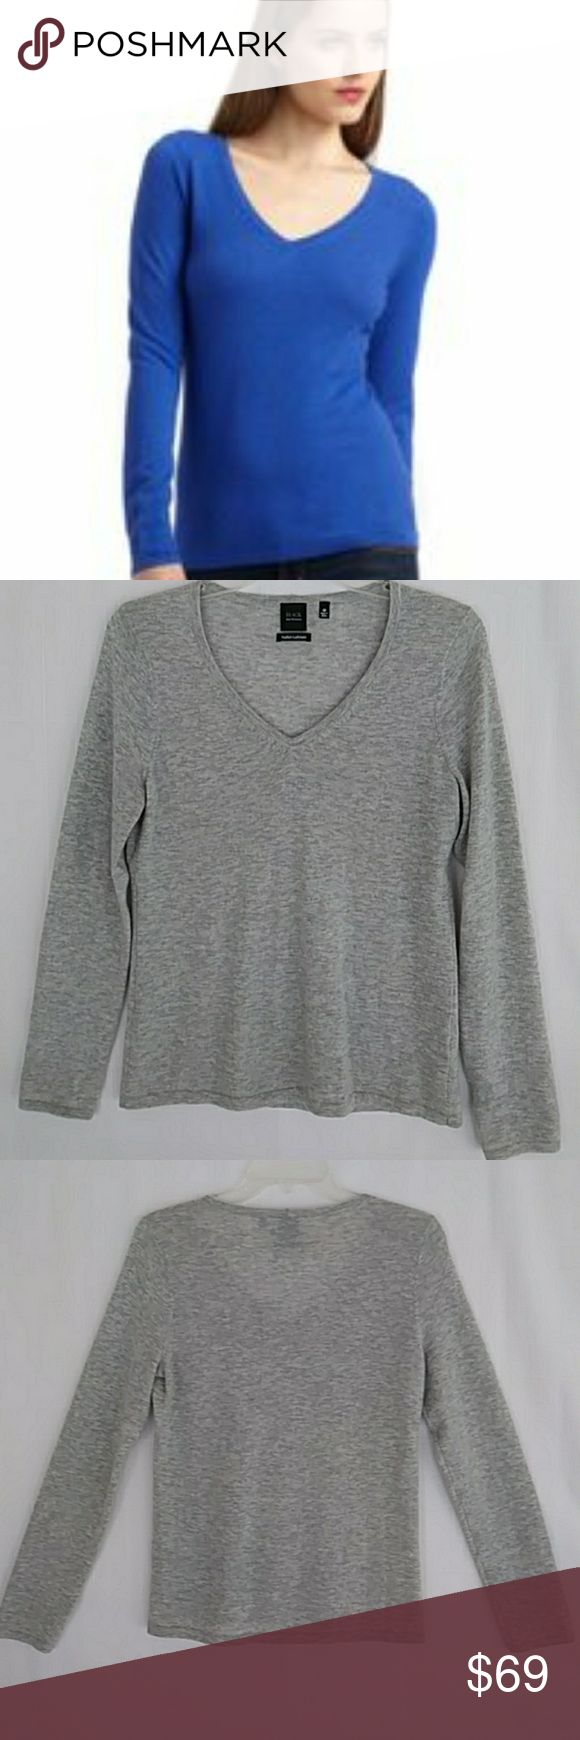 "Just in! 100% Cashmere SAKS (Black Label) - Gray Like New SAKS FIFTH AVENUE ""Black Label"" Feather Cashmere V-Neck in soft gray. A luxurious wardrobe staple. Fitted, V-neck, long sleeves, pullover  Exceptional preloved condition. Purchased retail, worn less than handful of times as the piece more conforming than owner hoped. 100% cashmere. Soft gray (color accurately depicted in photo #4). Size M. Flat measure - Chest: 17"", Length: 23.5"", Sleeve: 23.5""  Last sold Saks Off 5th $104., currently…"